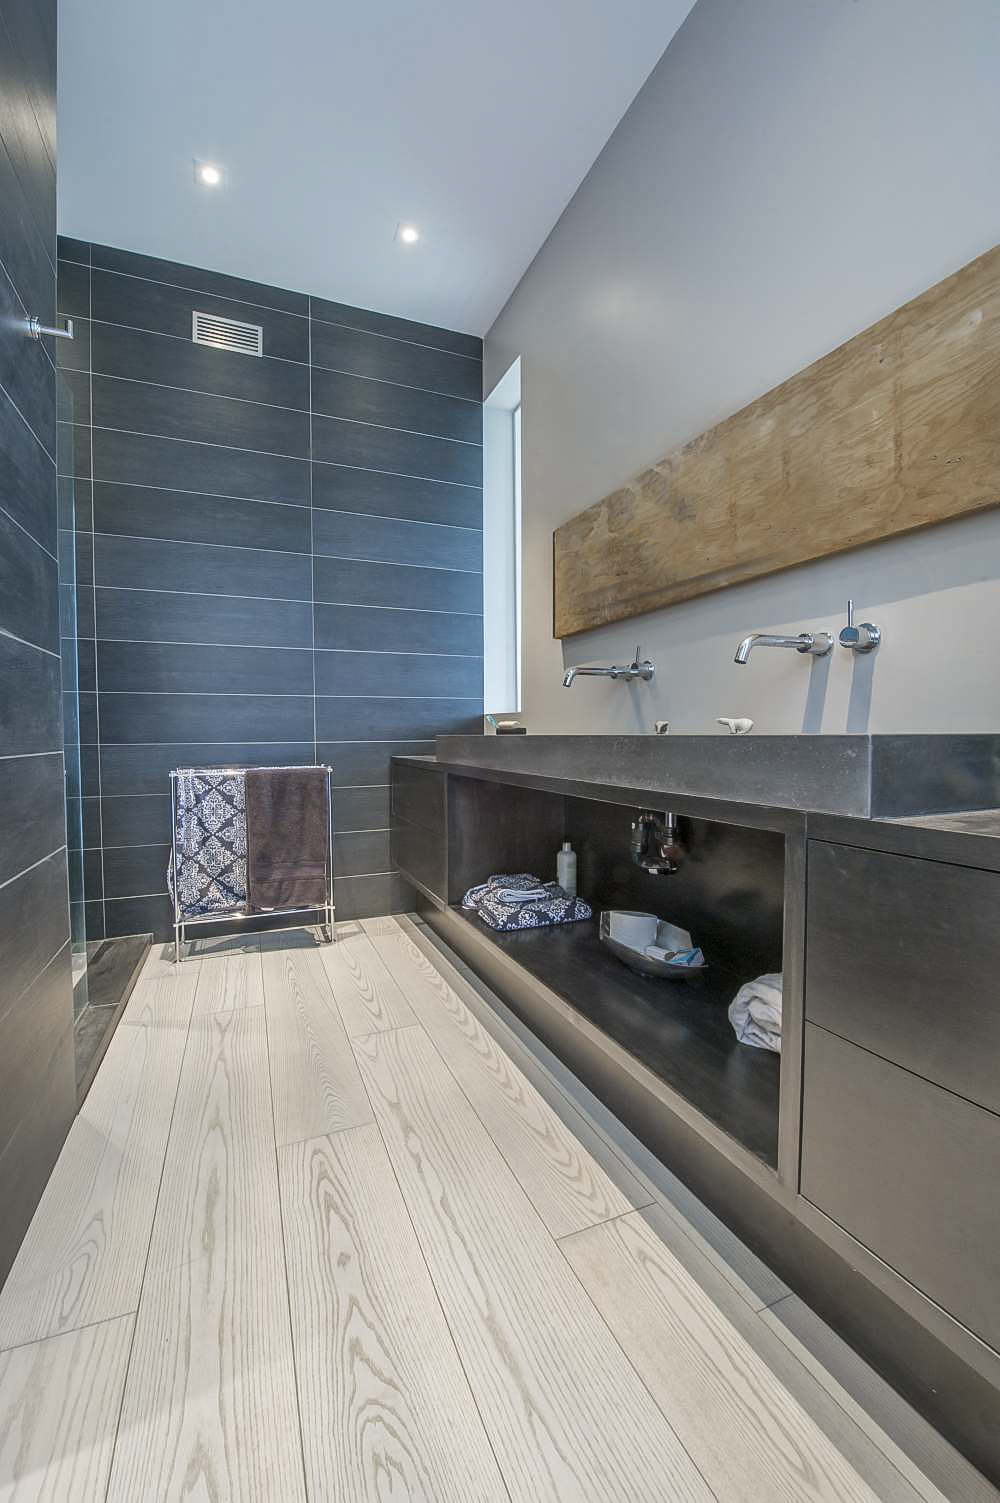 matte ash wide plank hardwood floor in bathroom.jpg